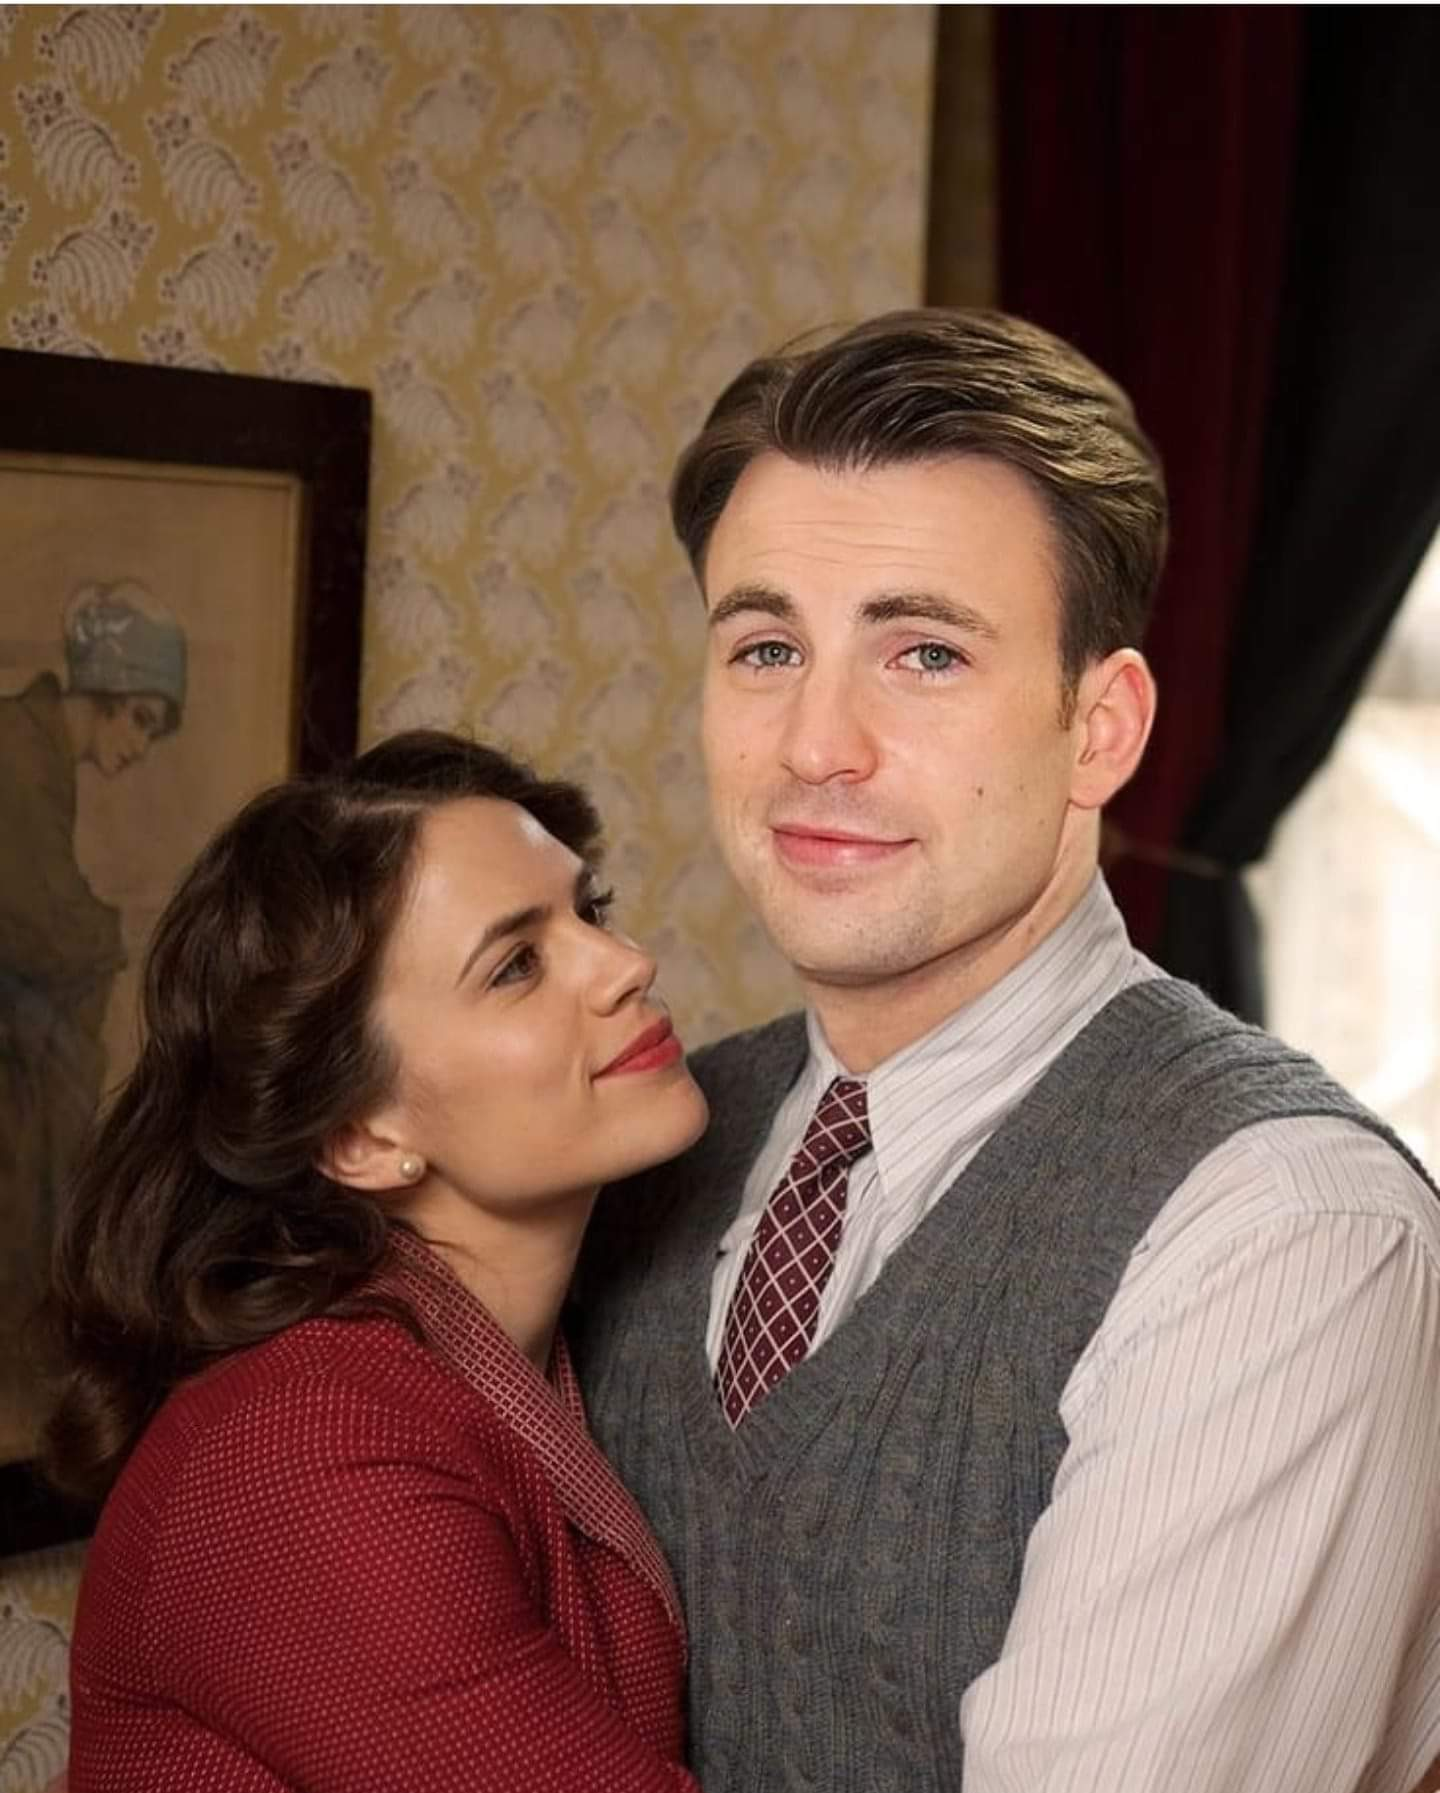 Peggy and rogers